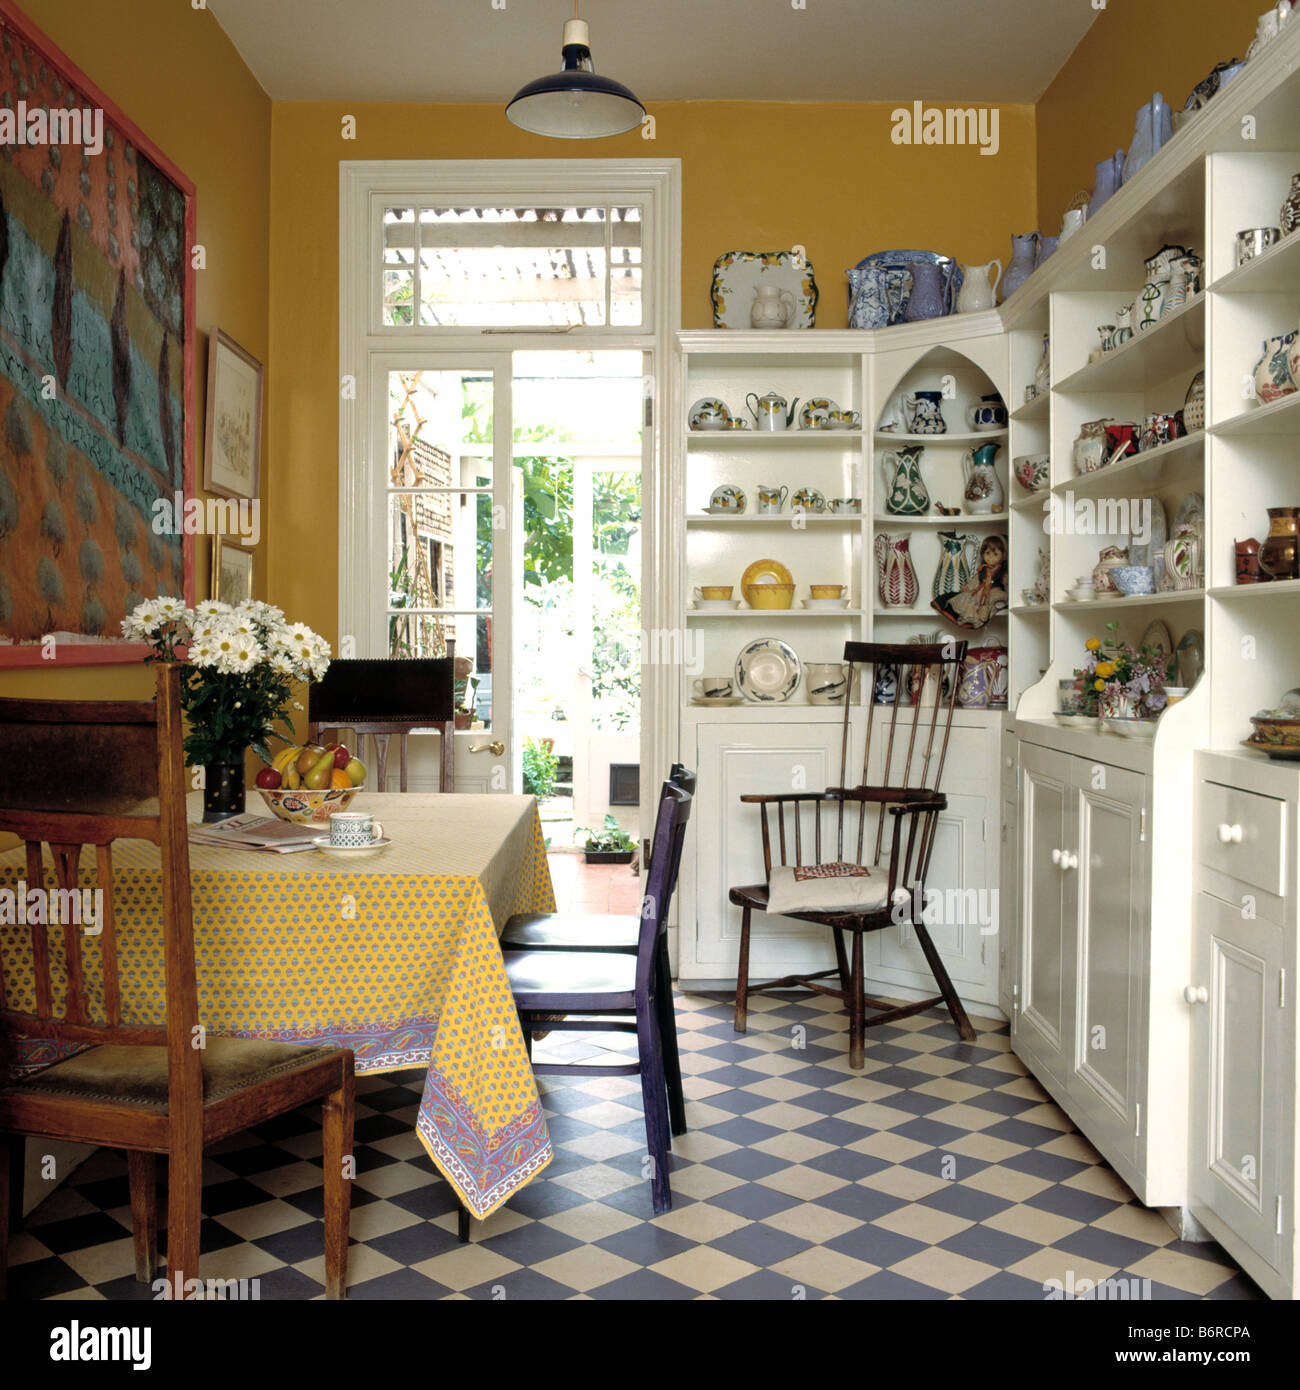 Blue And White Chequerboard Flooring In Yellow Dining Room